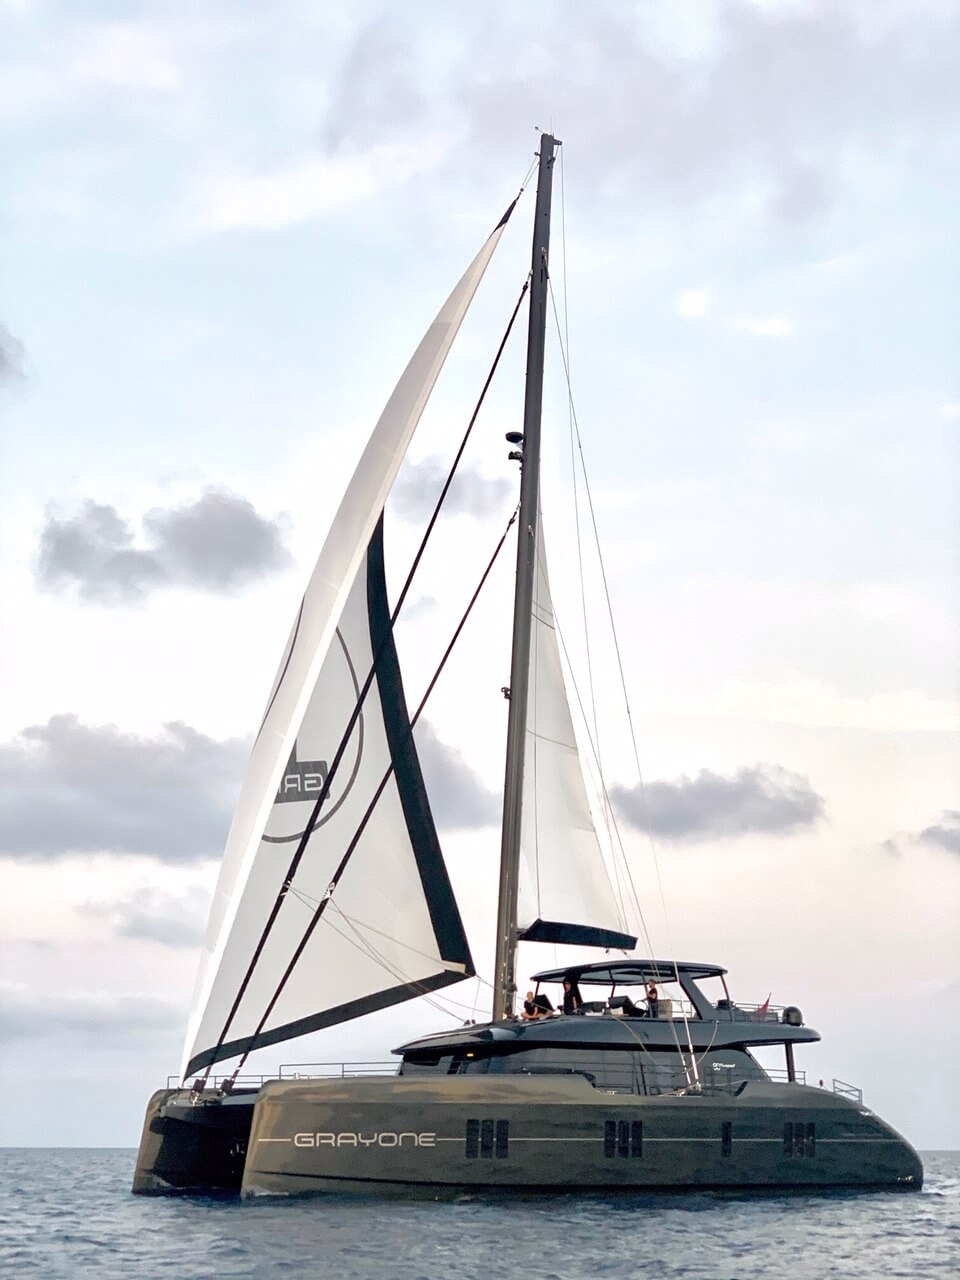 GRAYONE Sunreef Catamaran 3